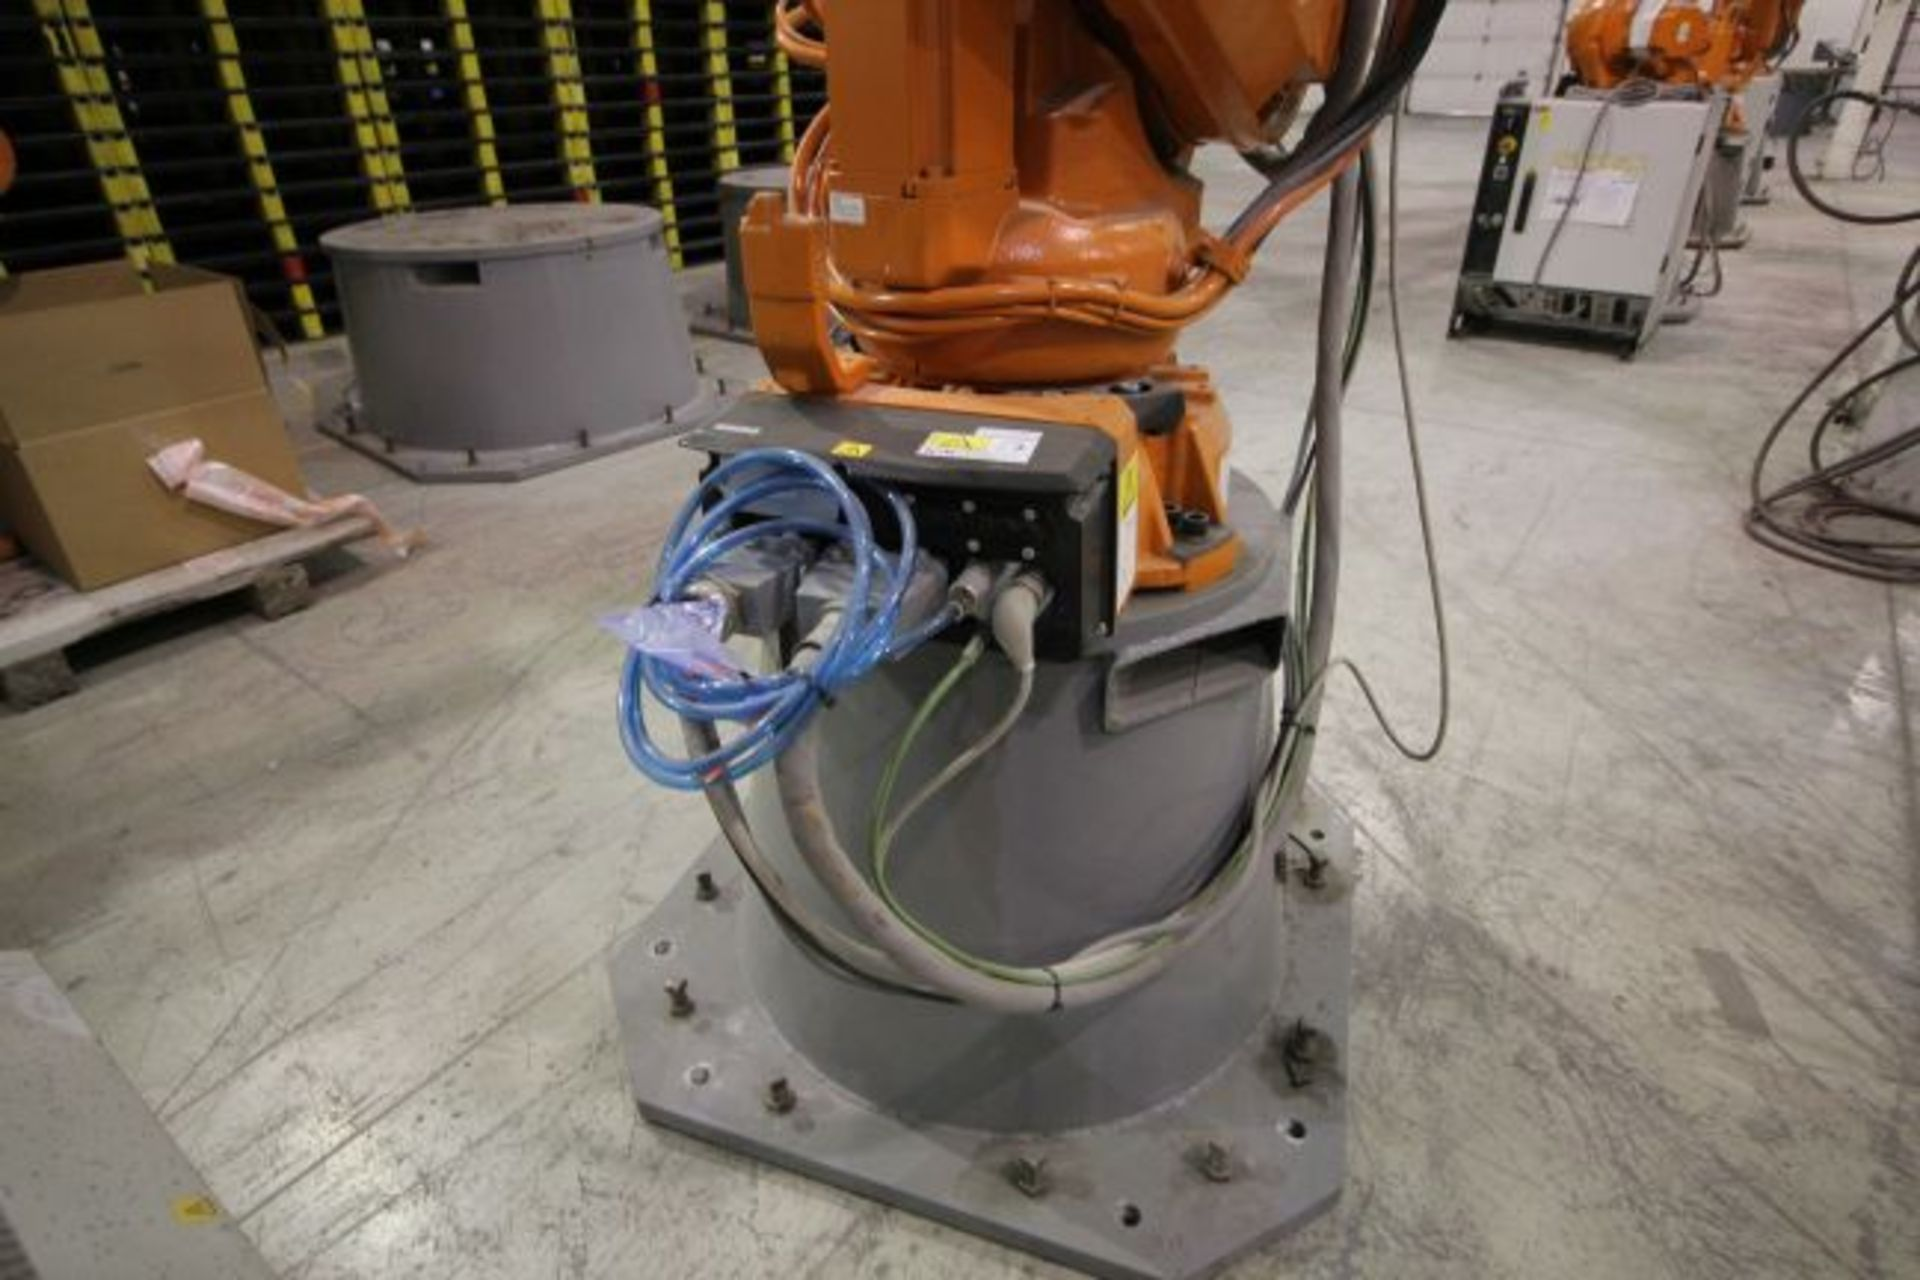 ABB ROBOT IRB 4600 2.55/40KG WITH IRC5 CONTROLS, YEAR 2014, SN 500798 TEACH PENDANT& CABLES - Image 4 of 9